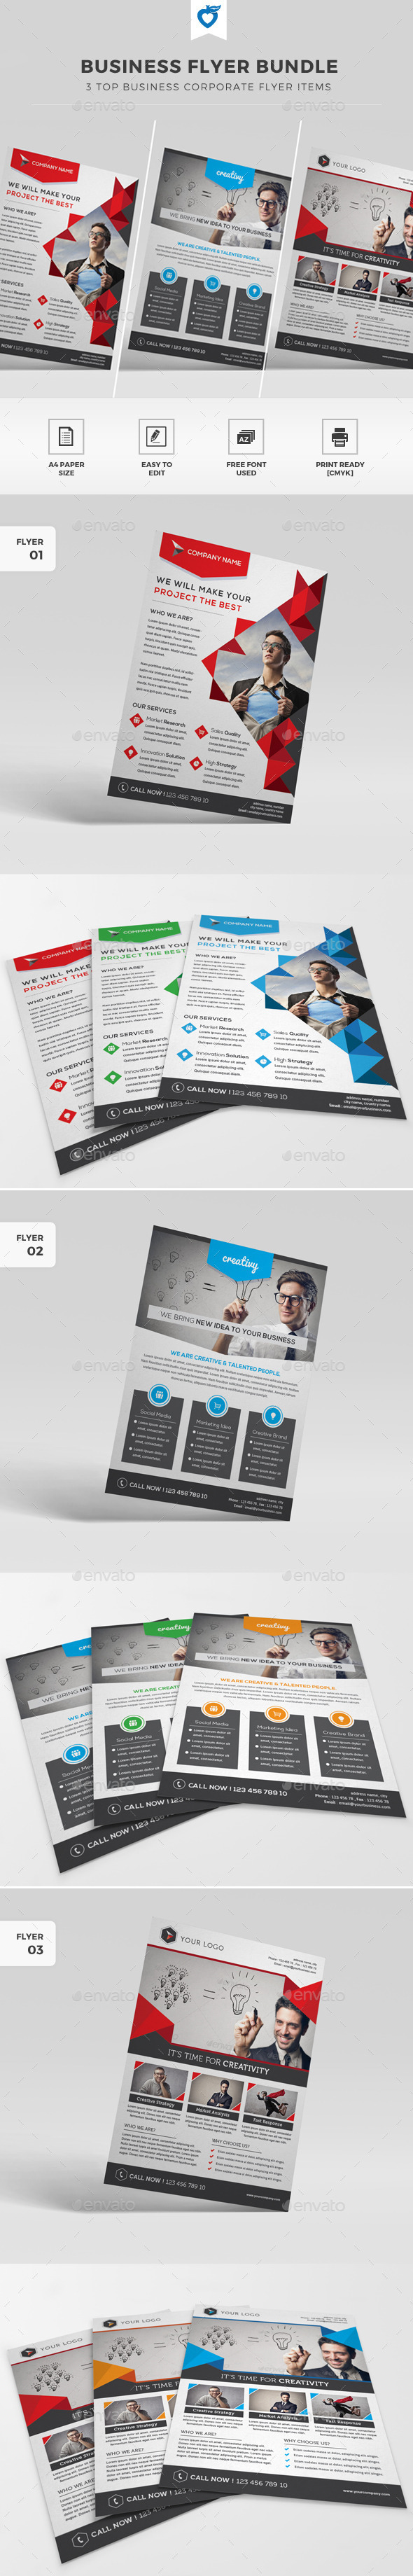 GraphicRiver Business Flyer Bundle 11783955